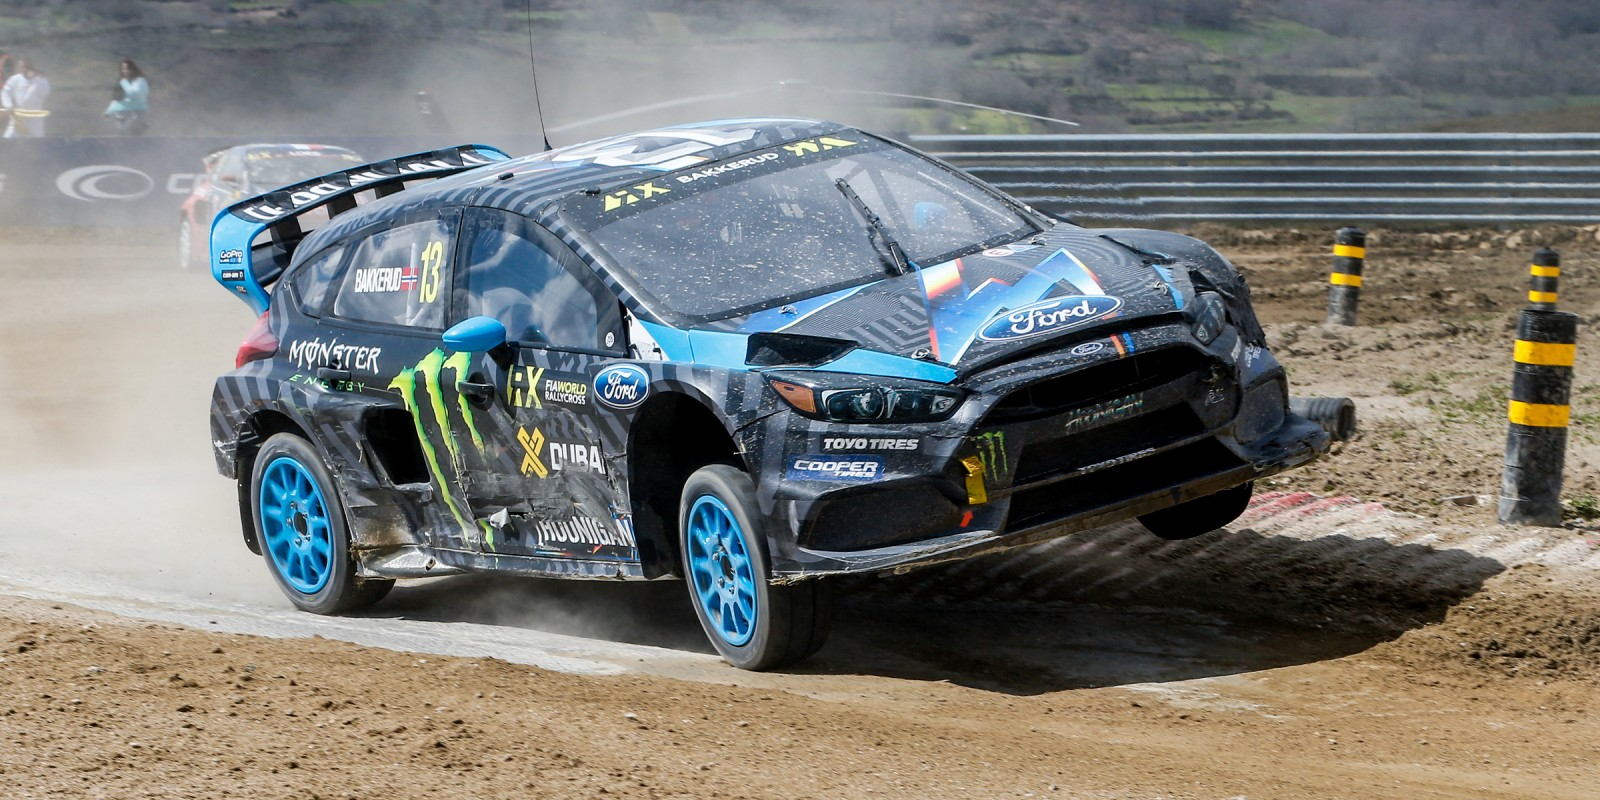 Day two images from round one of the FIA World Rallycross Championship, Round One - Race day